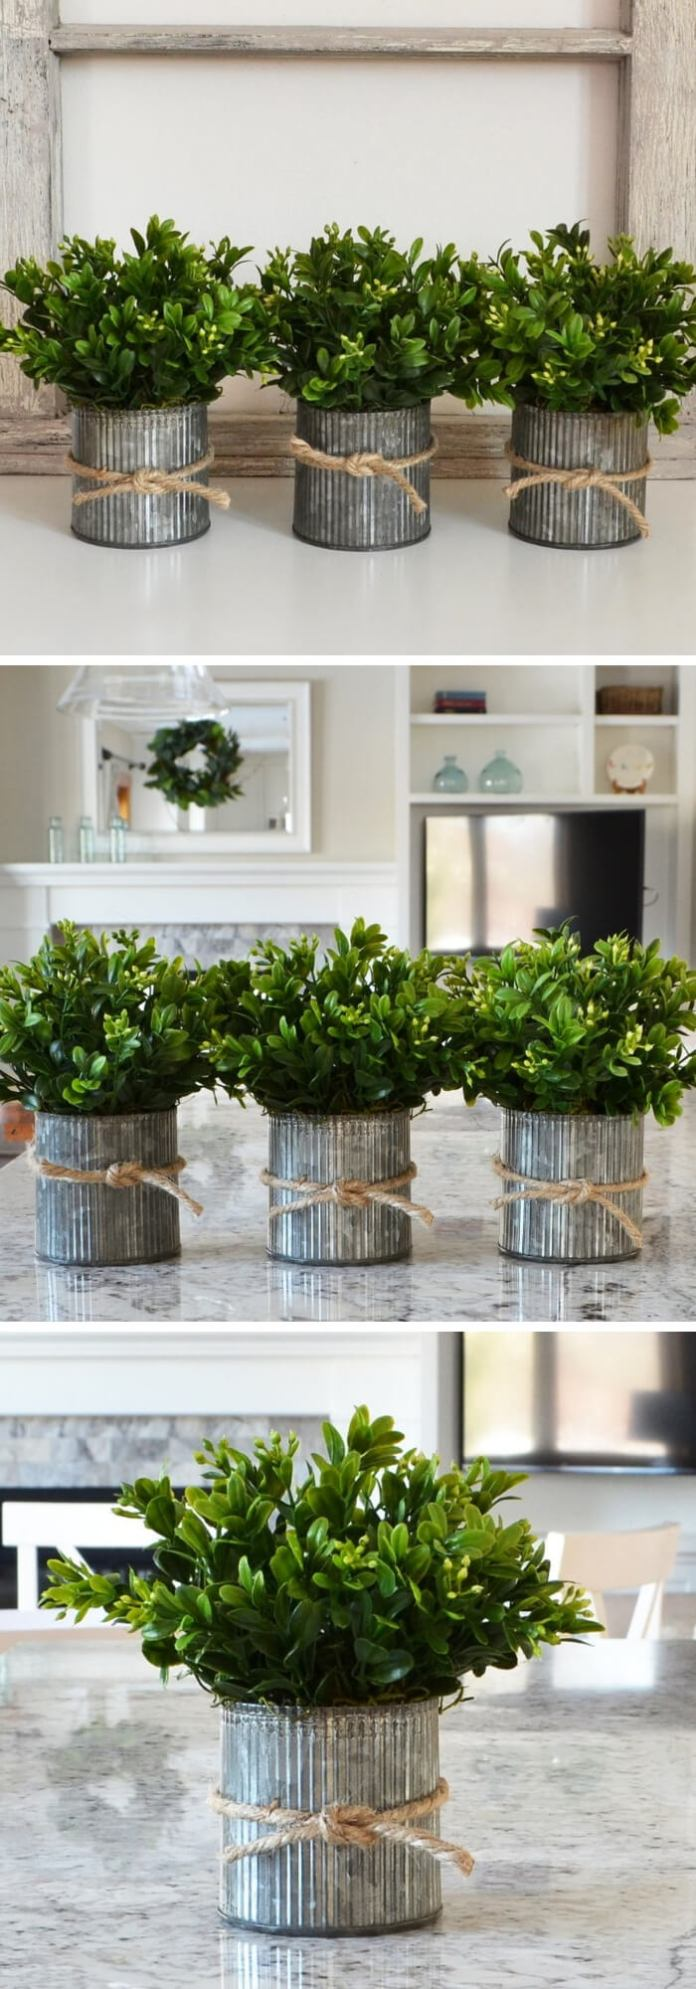 Faux Boxwood | Best Farmhouse Indoor Plant Decor Ideas & Designs